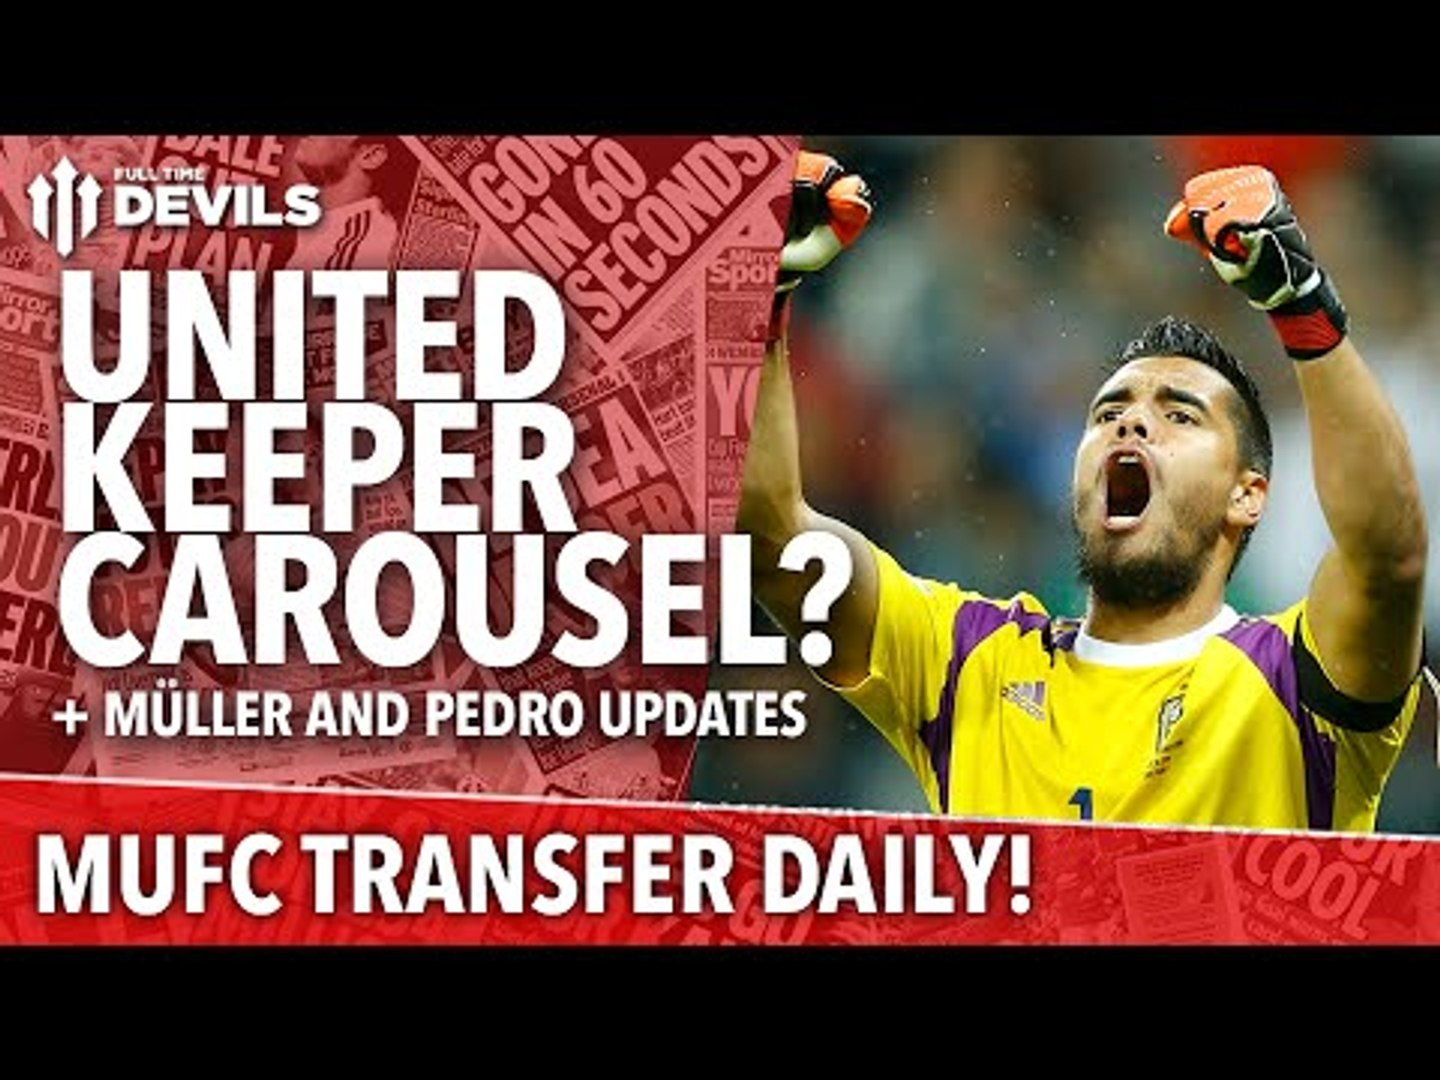 United Keeper Carousel? | Transfer Daily | Manchester United